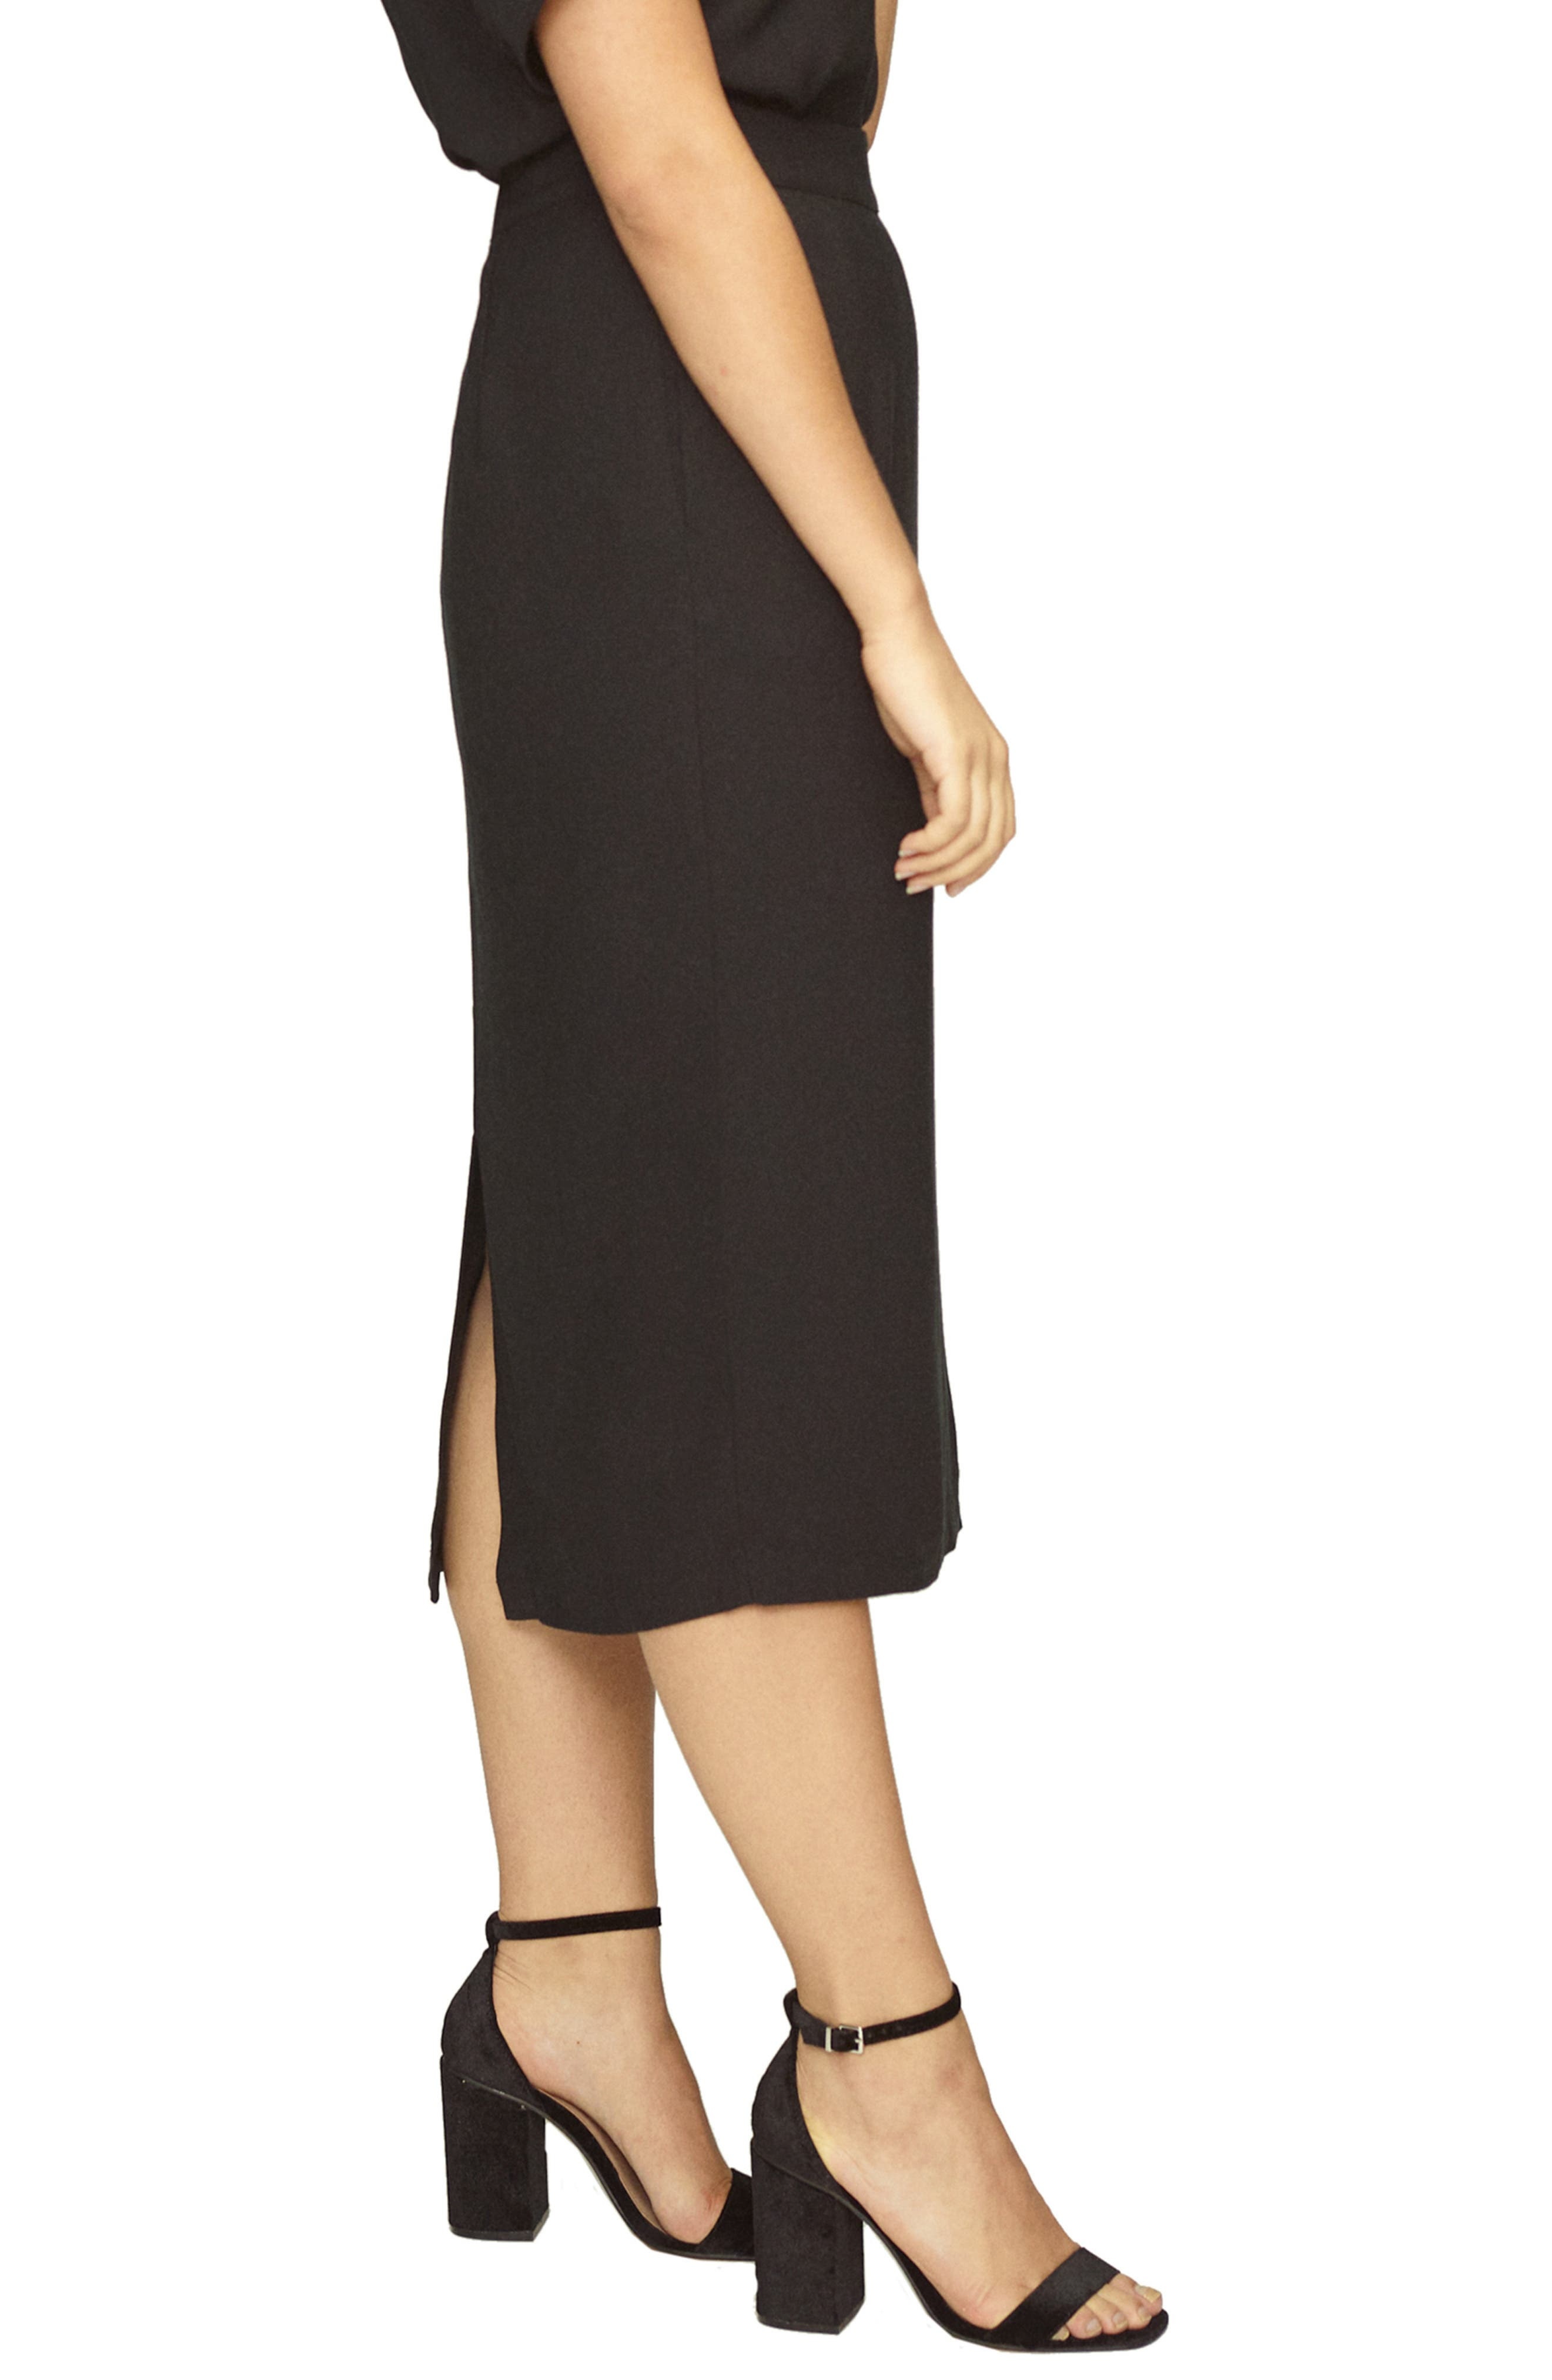 UNIVERSAL STANDARD, Twill Pencil Skirt, Alternate thumbnail 3, color, 001